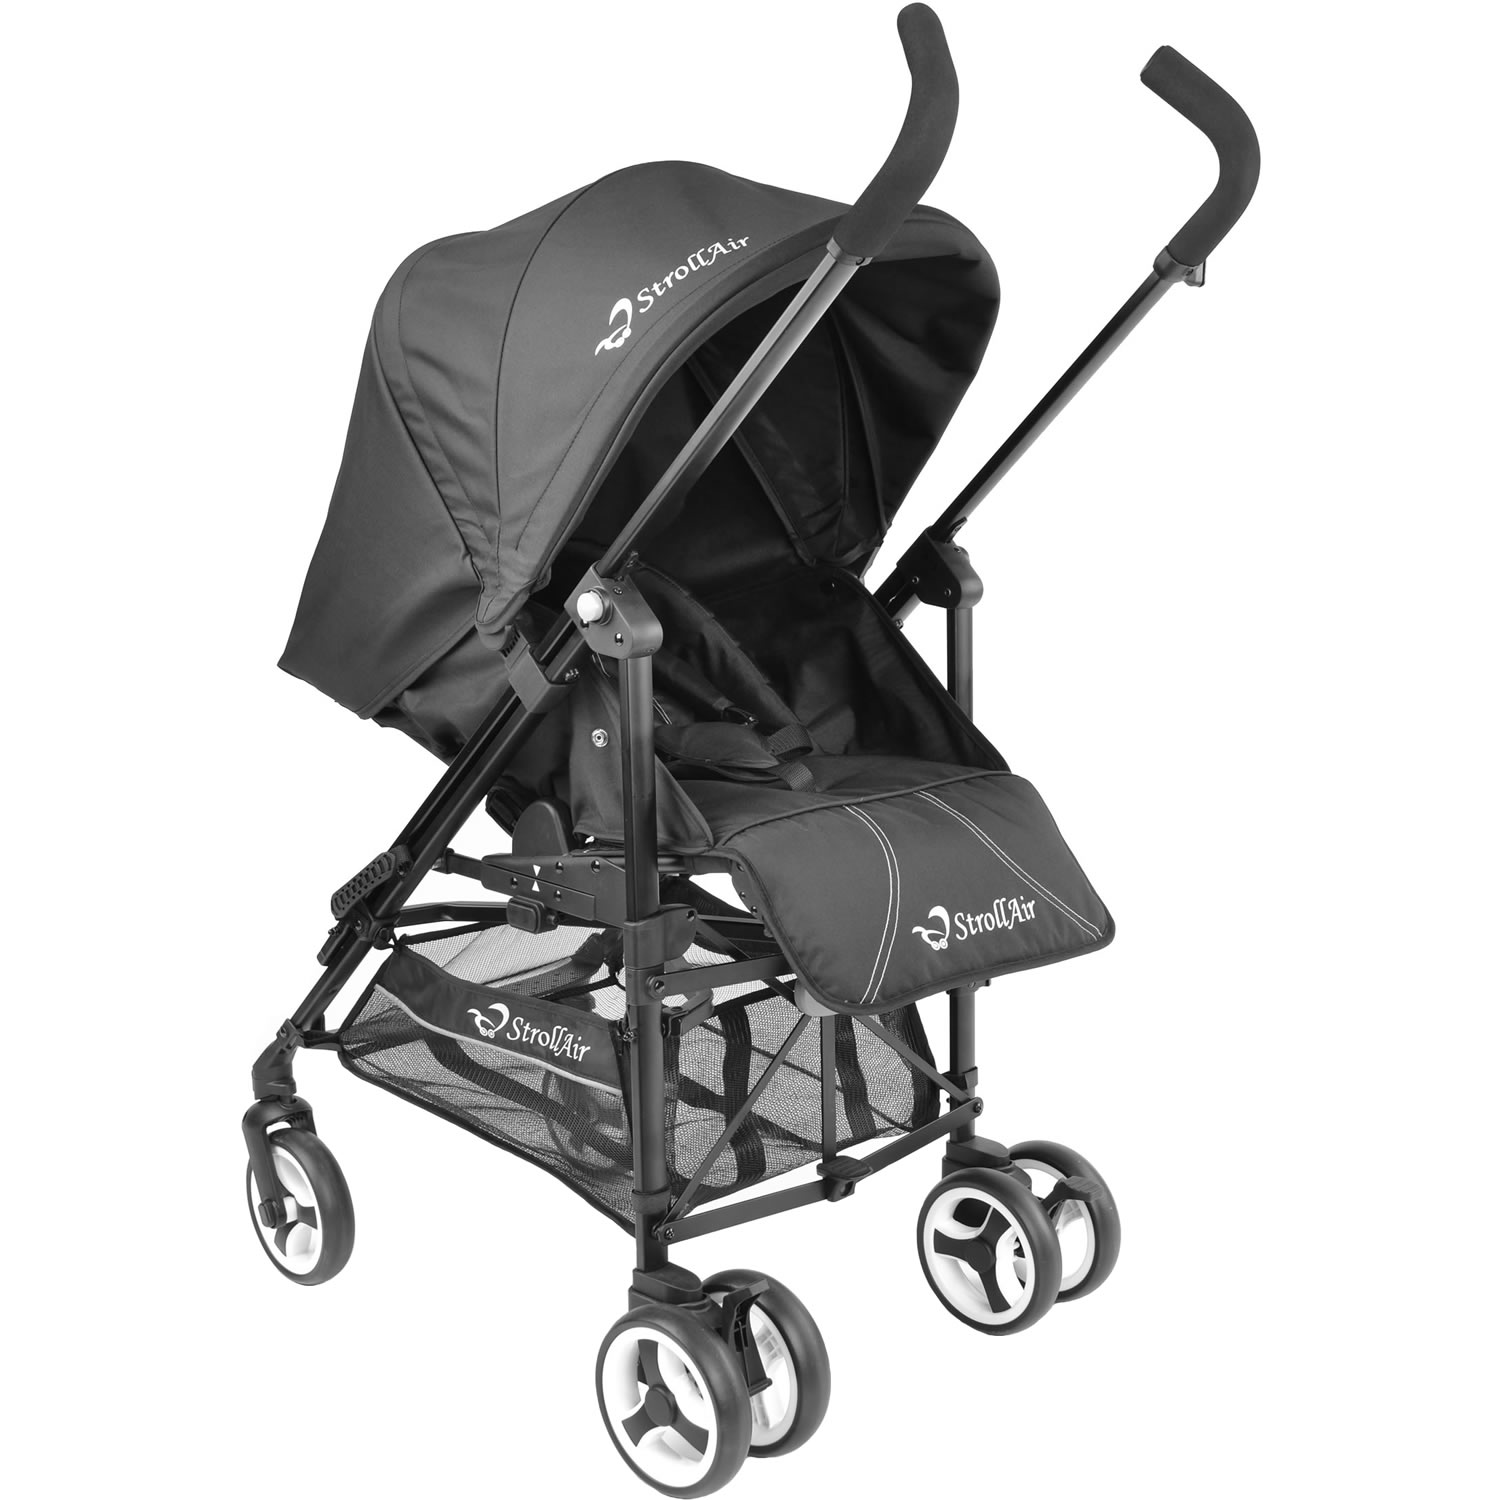 StrollAir ReVu Umbrella Stroller, Black by StrollAir